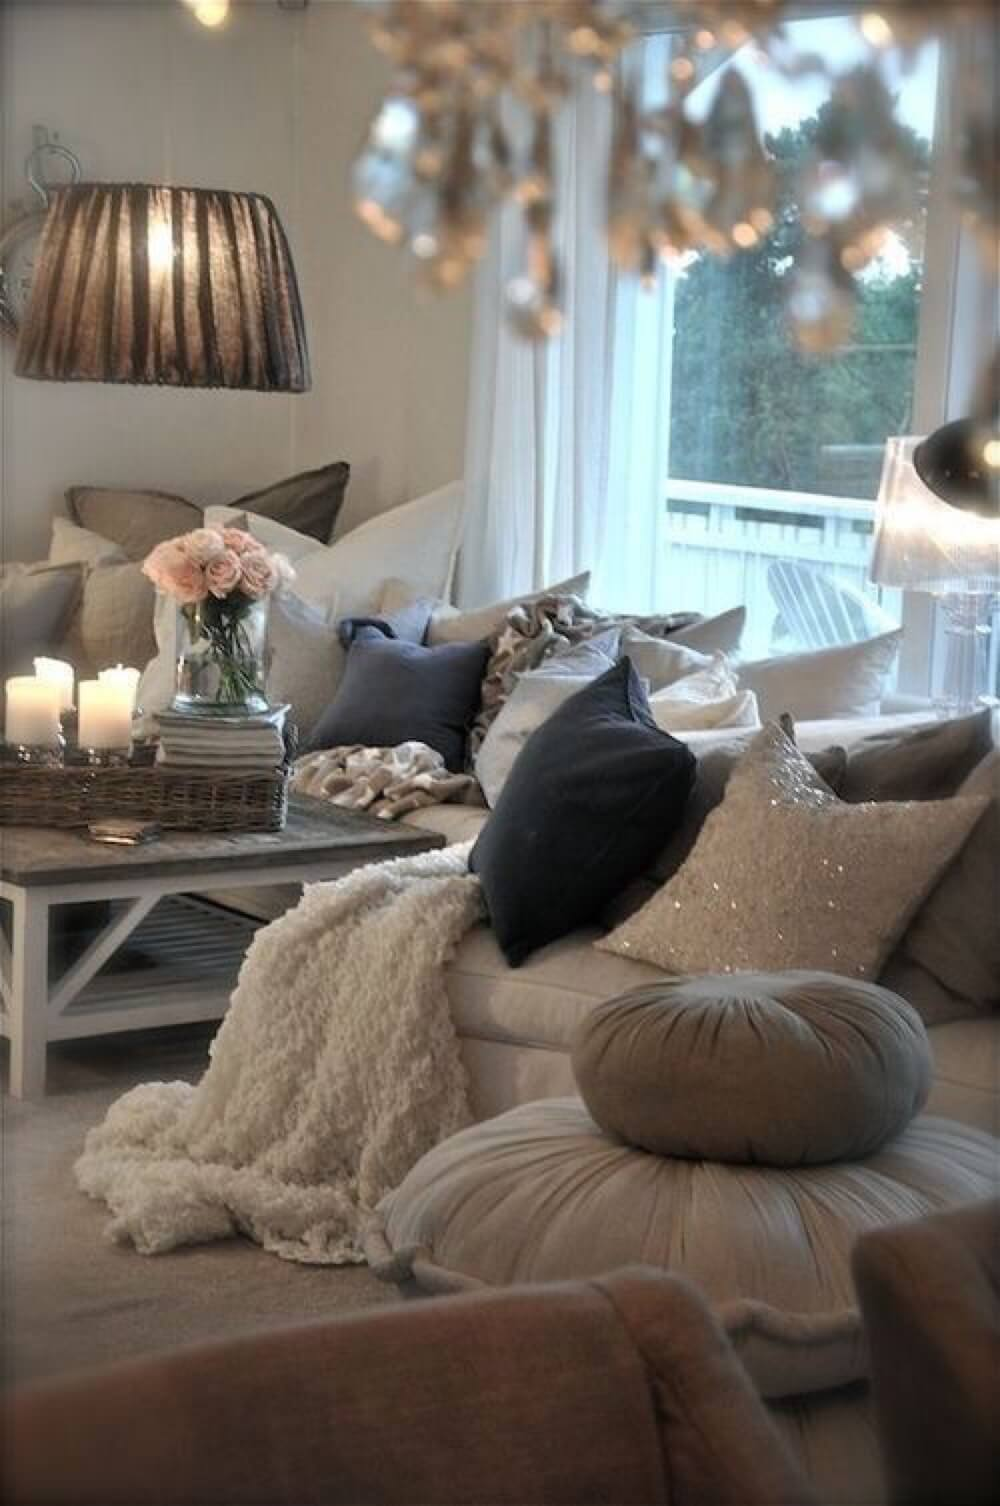 A Warm, Inviting Room With Wealth And Class